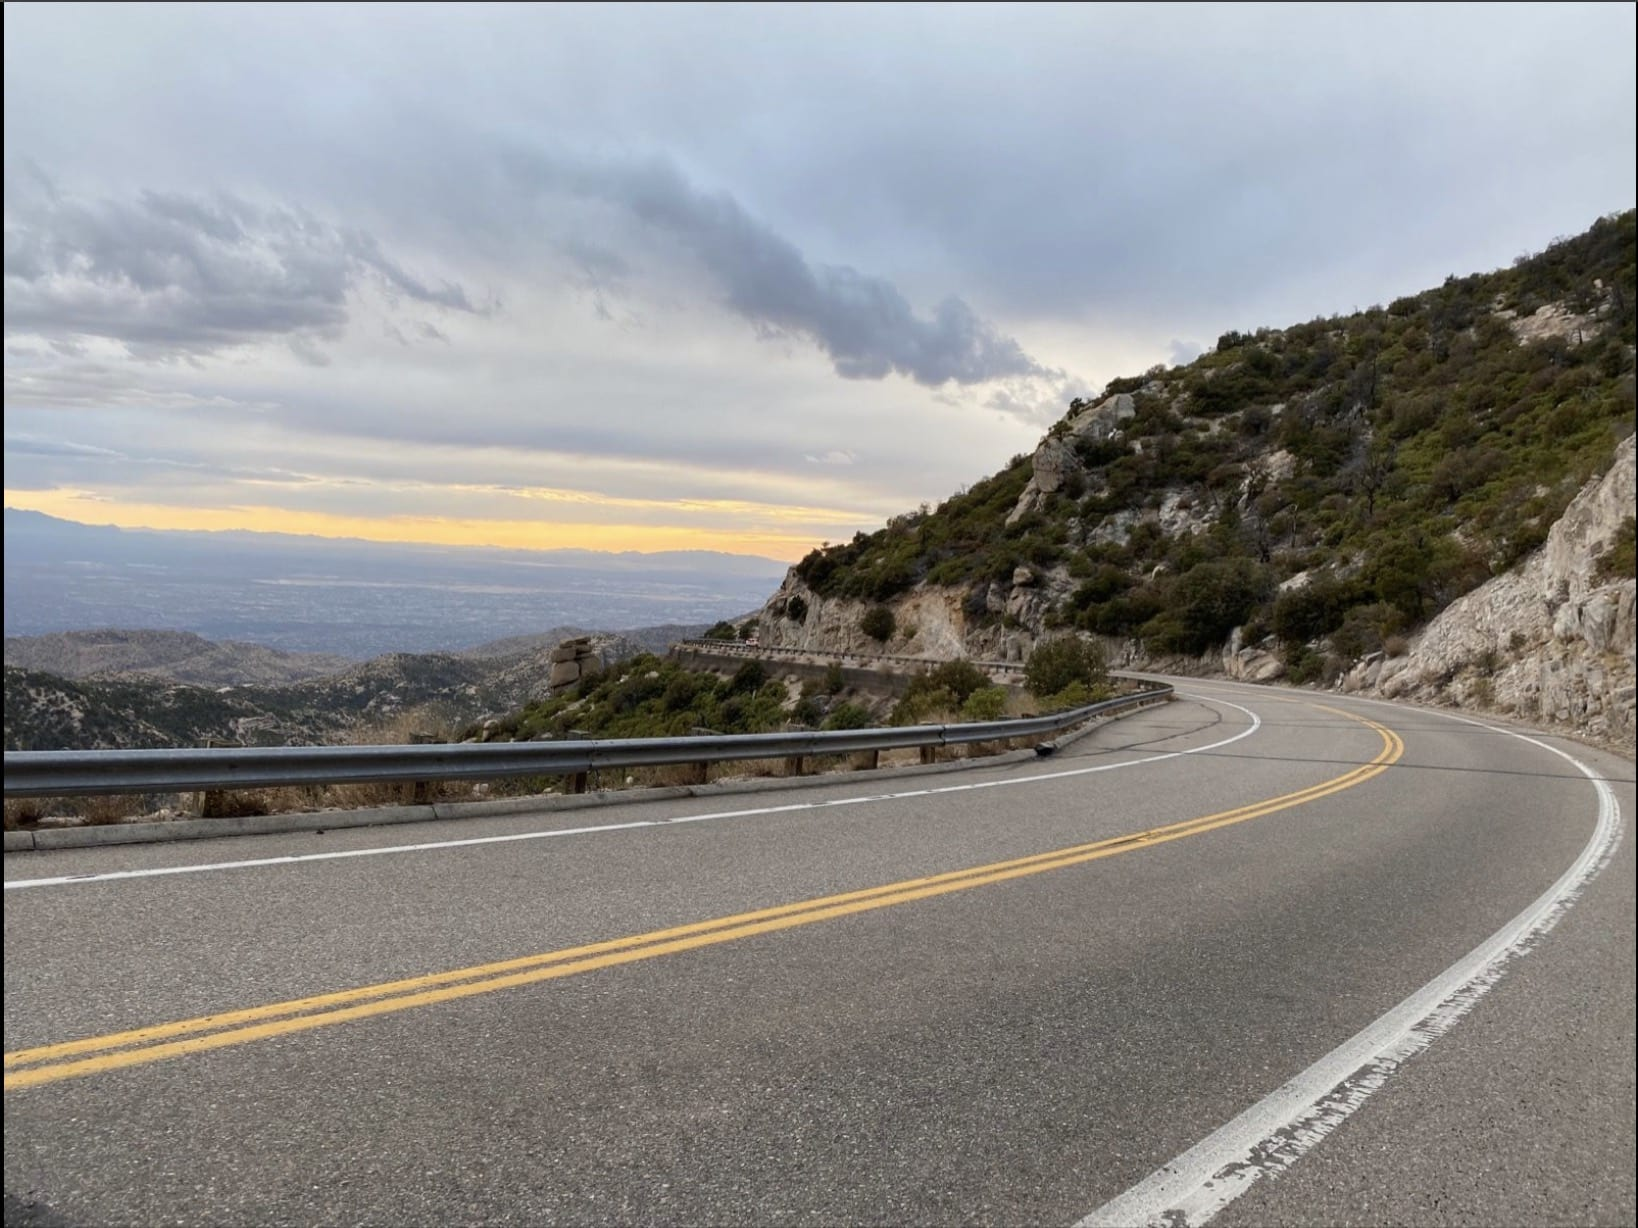 The Mt Lemmon paved road.